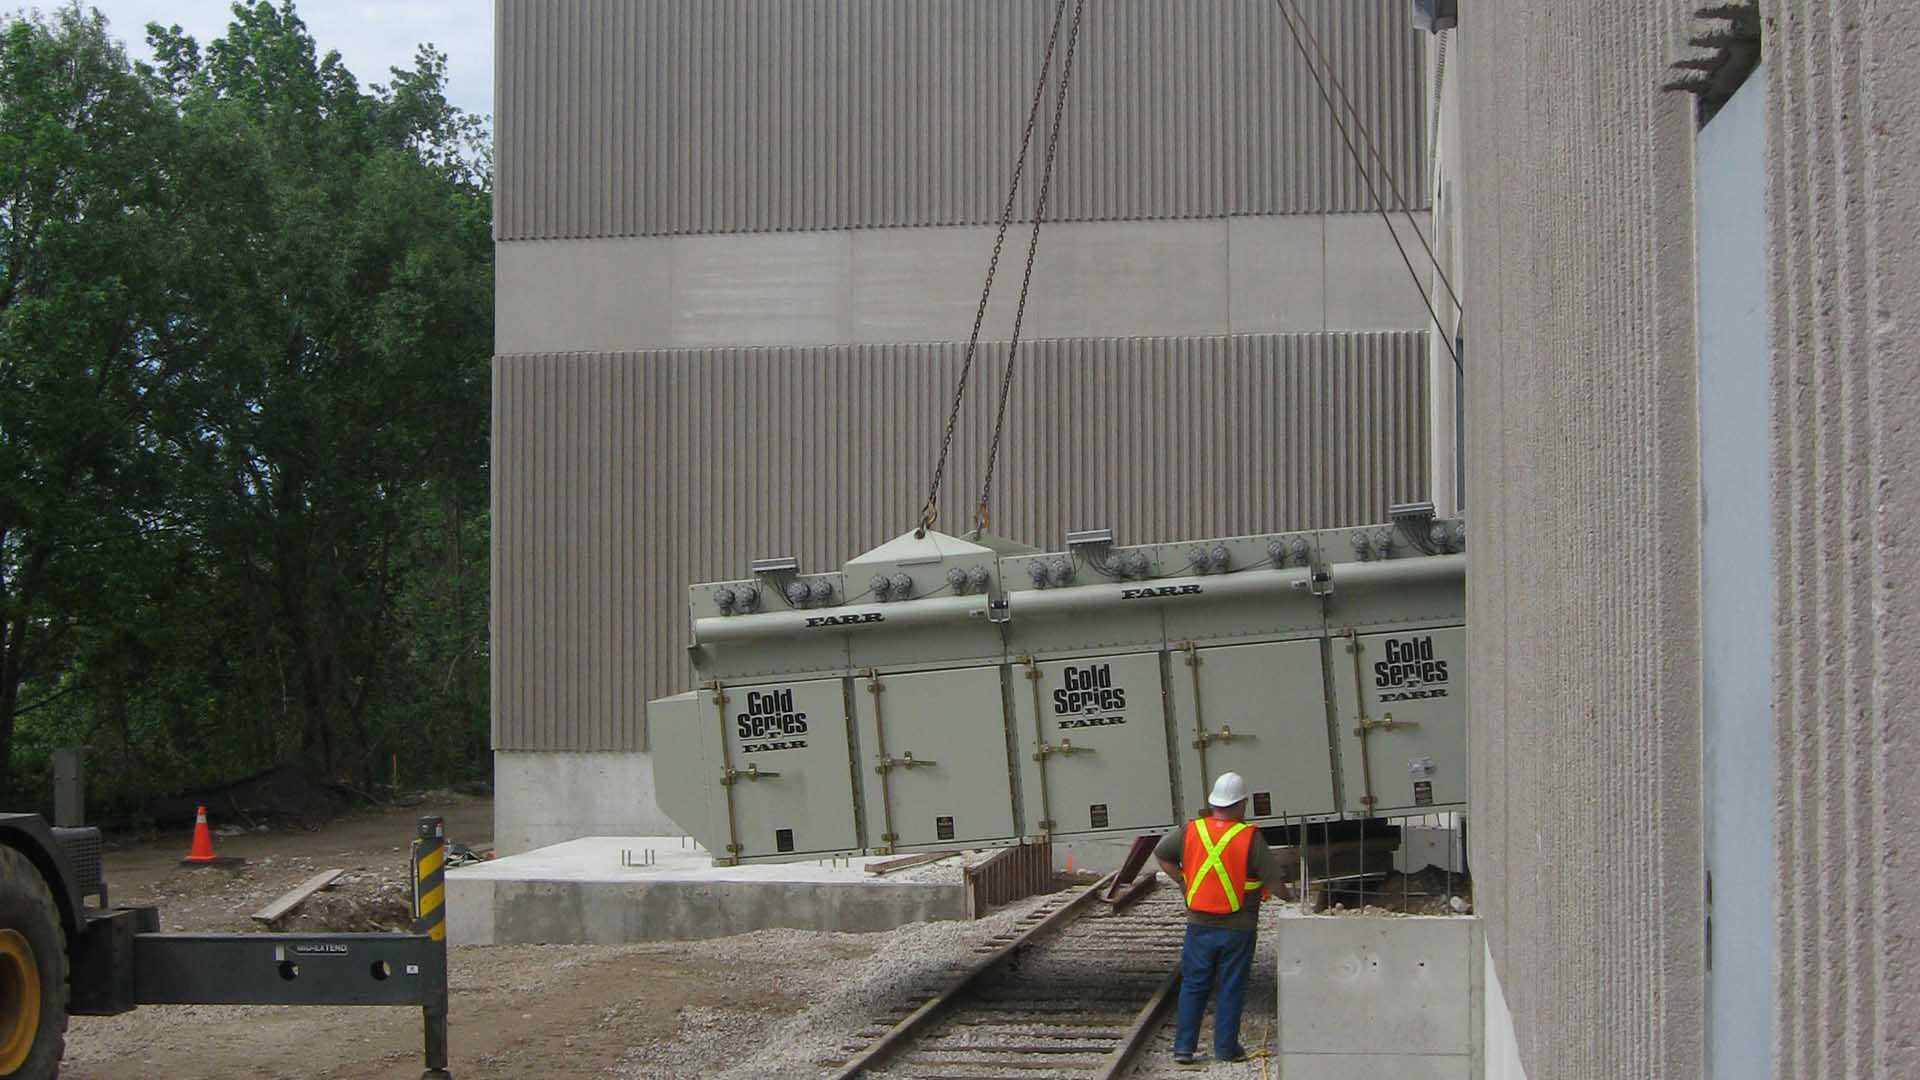 Kernic Systems installing Cold Series Equipment